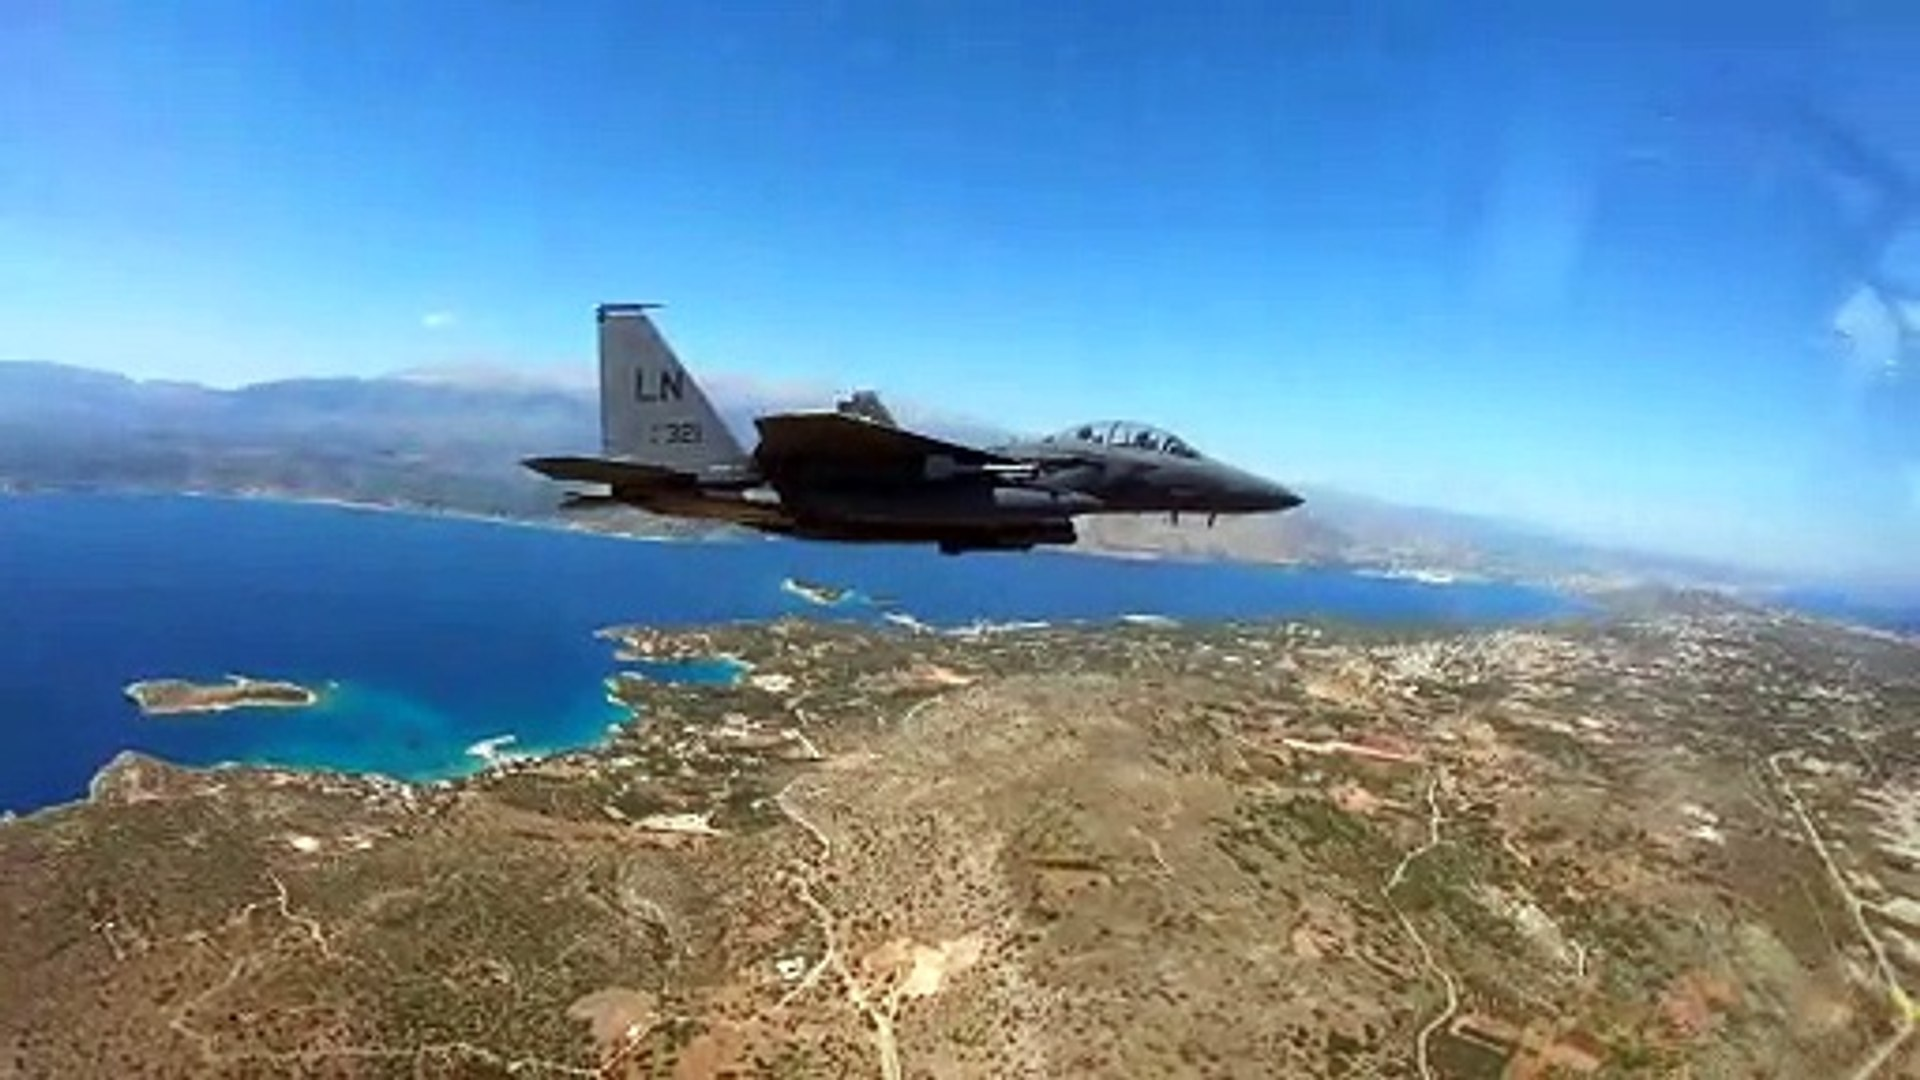 US Military News • U.S. Air Force F-15E Strike Eagles Fly over the Greek Islands • May 31 2021